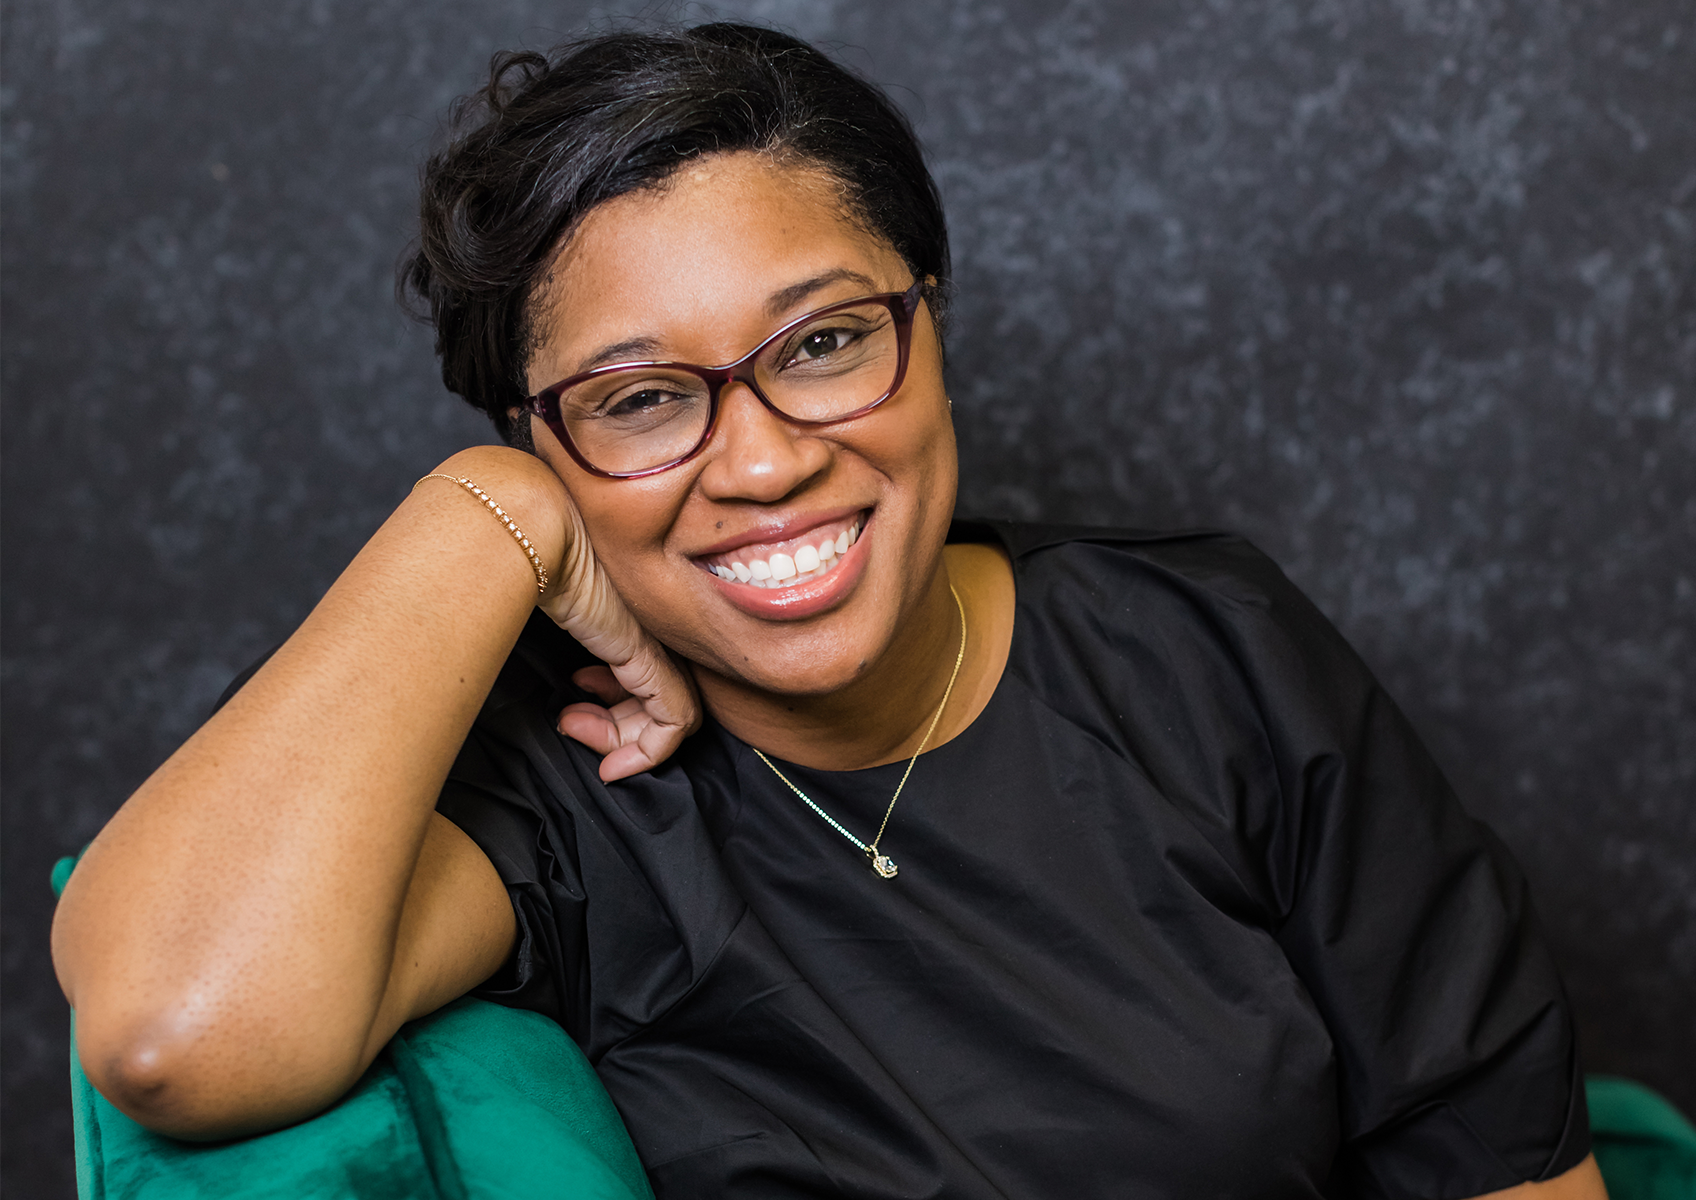 Tamuel of RW Events Takes a Business-Minded Approach to Chasing Her Dreams